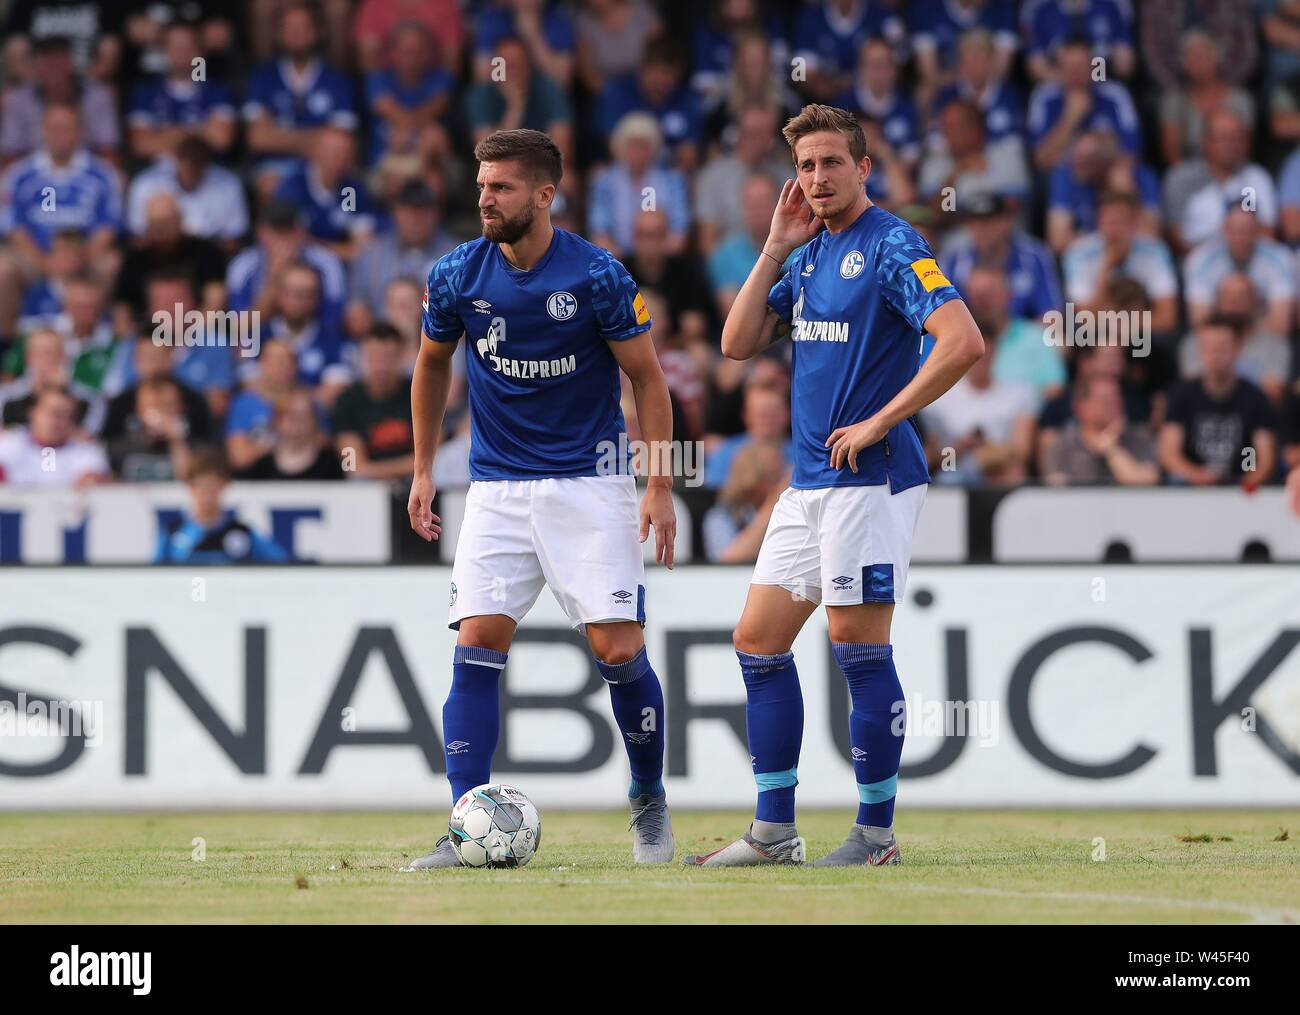 Lotte, Deutschland. 19th July, 2019. firo: 19.07.2019, football, 1.Bundesliga, season 2019/2020, friendly match, FC Schalke 04 - Norwich City Matija NASTASIC, Schalke, left with OCZIPKA | usage worldwide Credit: dpa/Alamy Live News - Stock Image